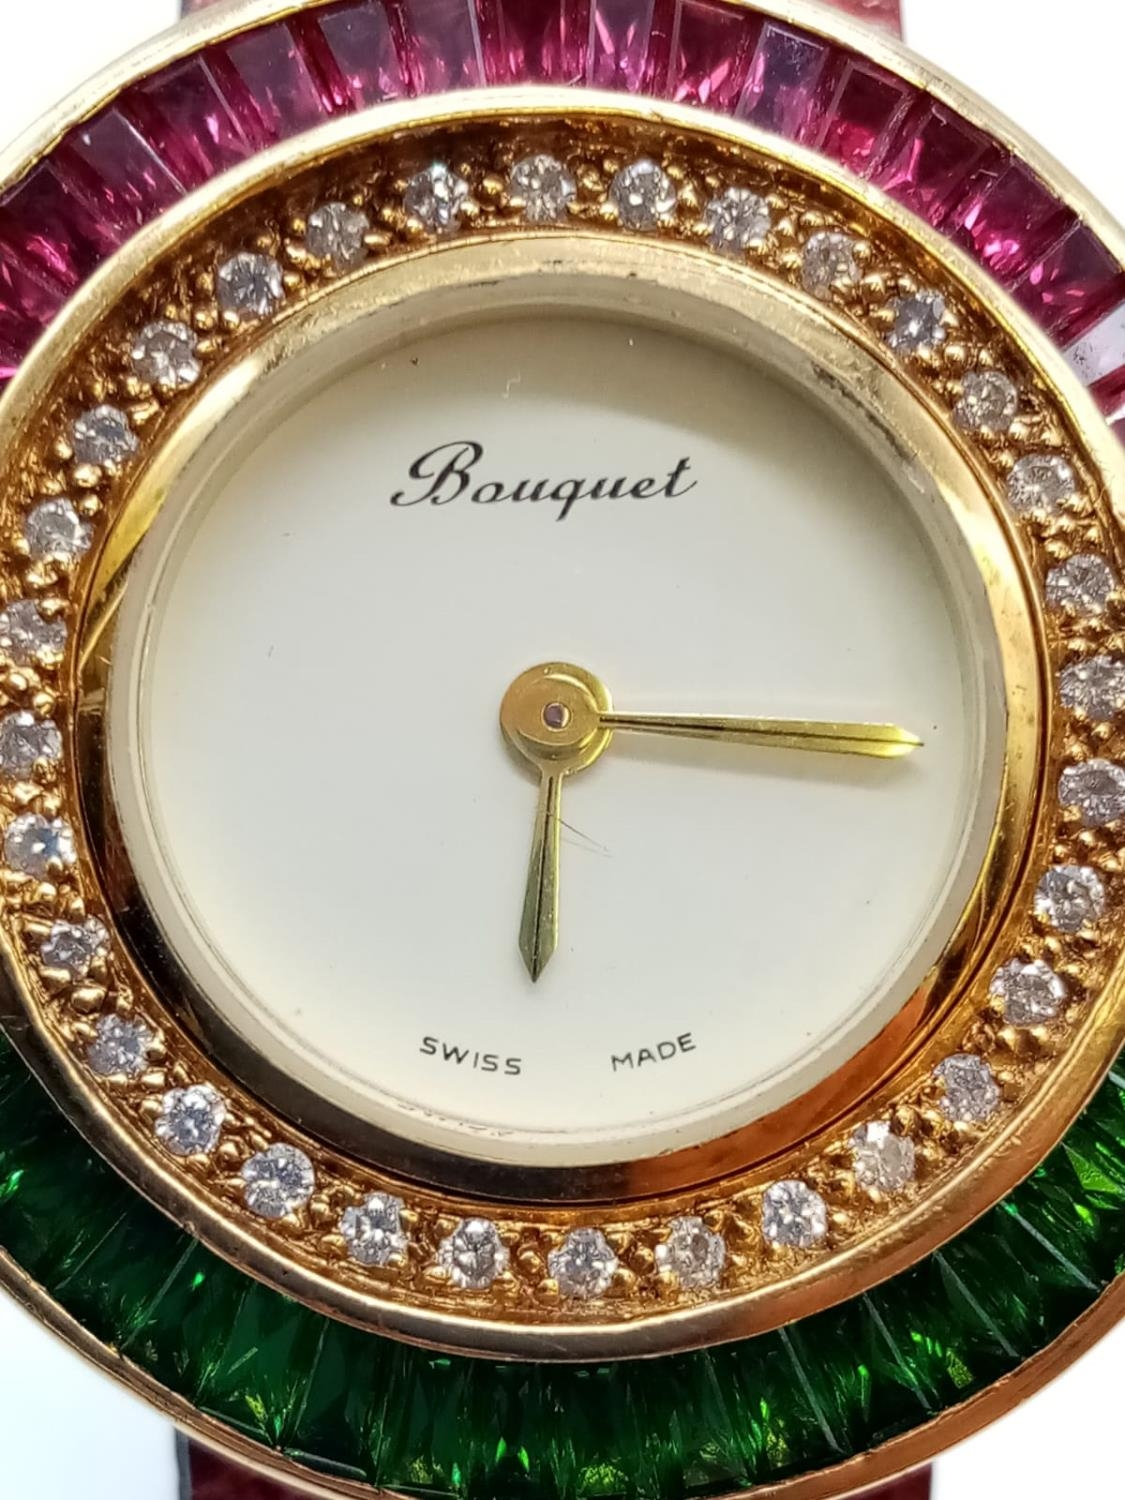 Vintage Bouquet 18ct gold ladies dress watch, round face with emerald, ruby and diamonds surround, - Image 3 of 9